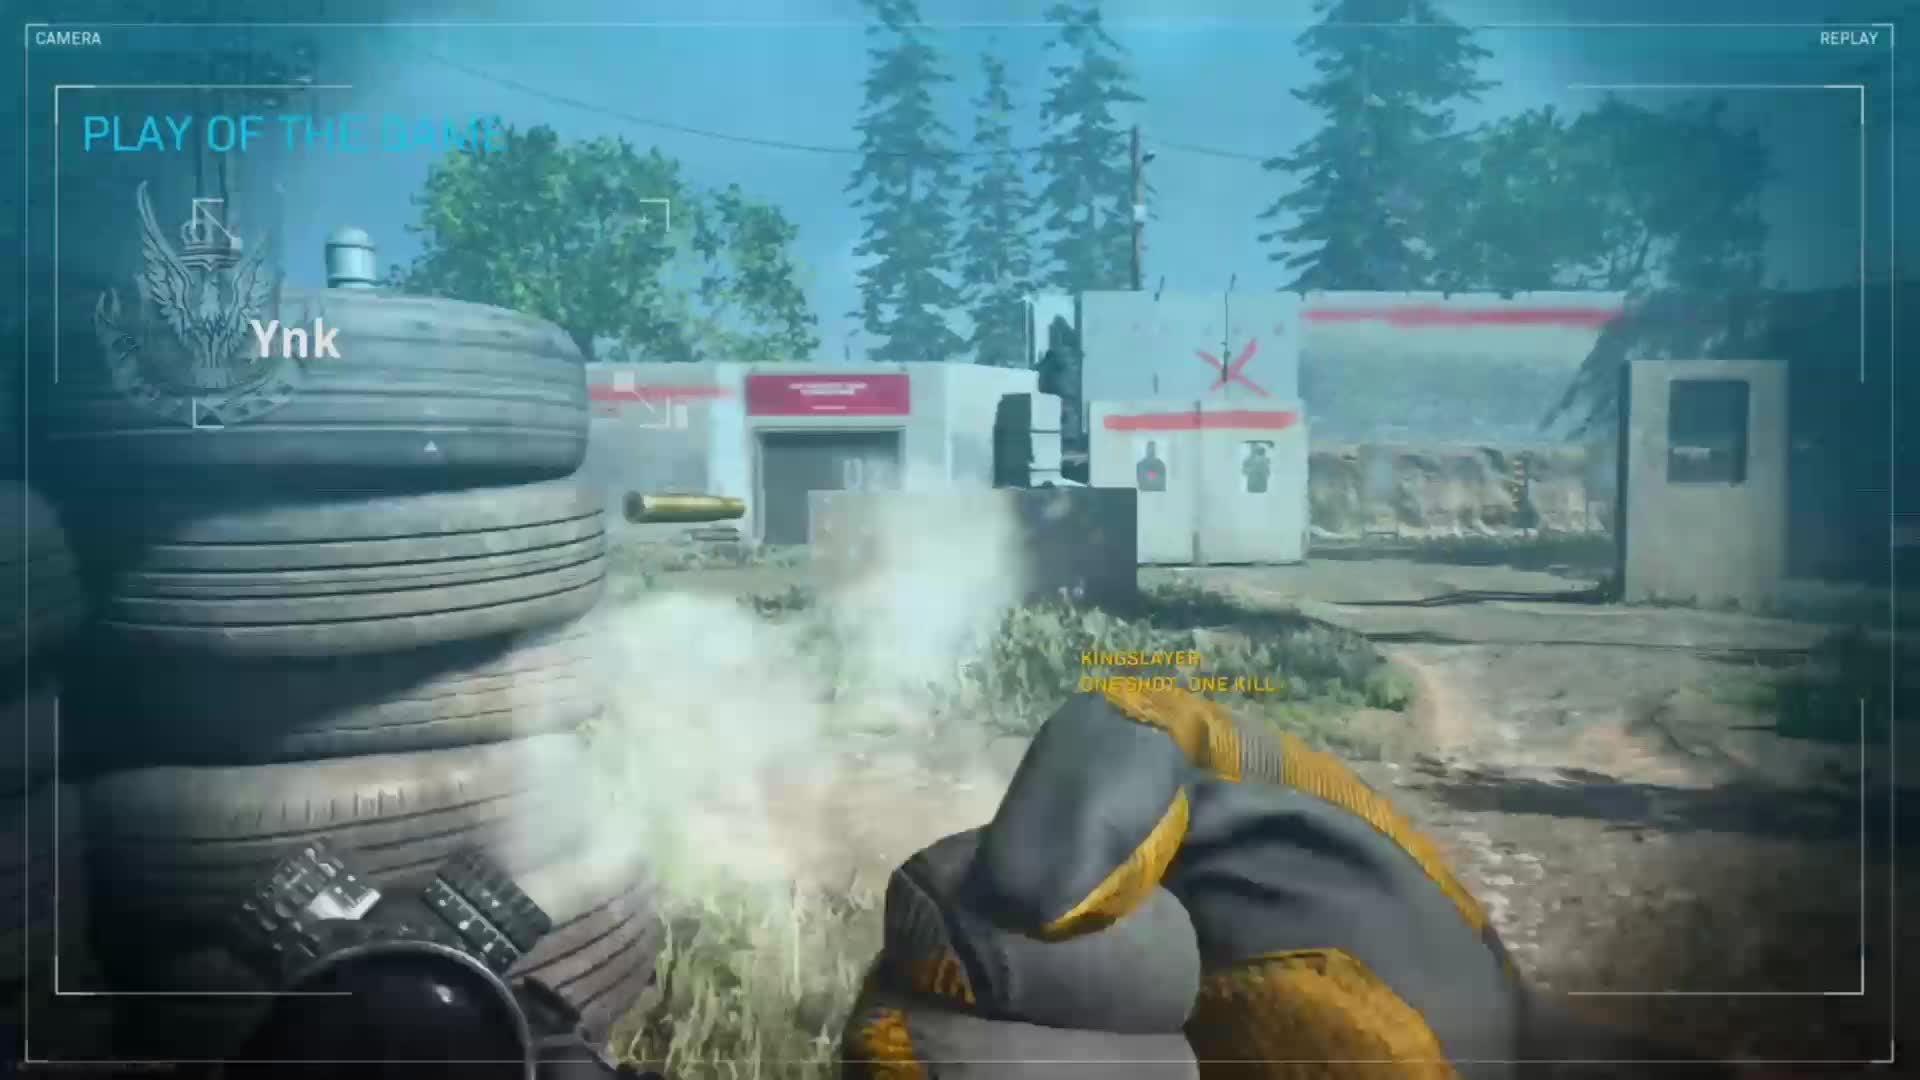 Call of Duty: General - Triple kill in a 1v1?!?! video cover image 0